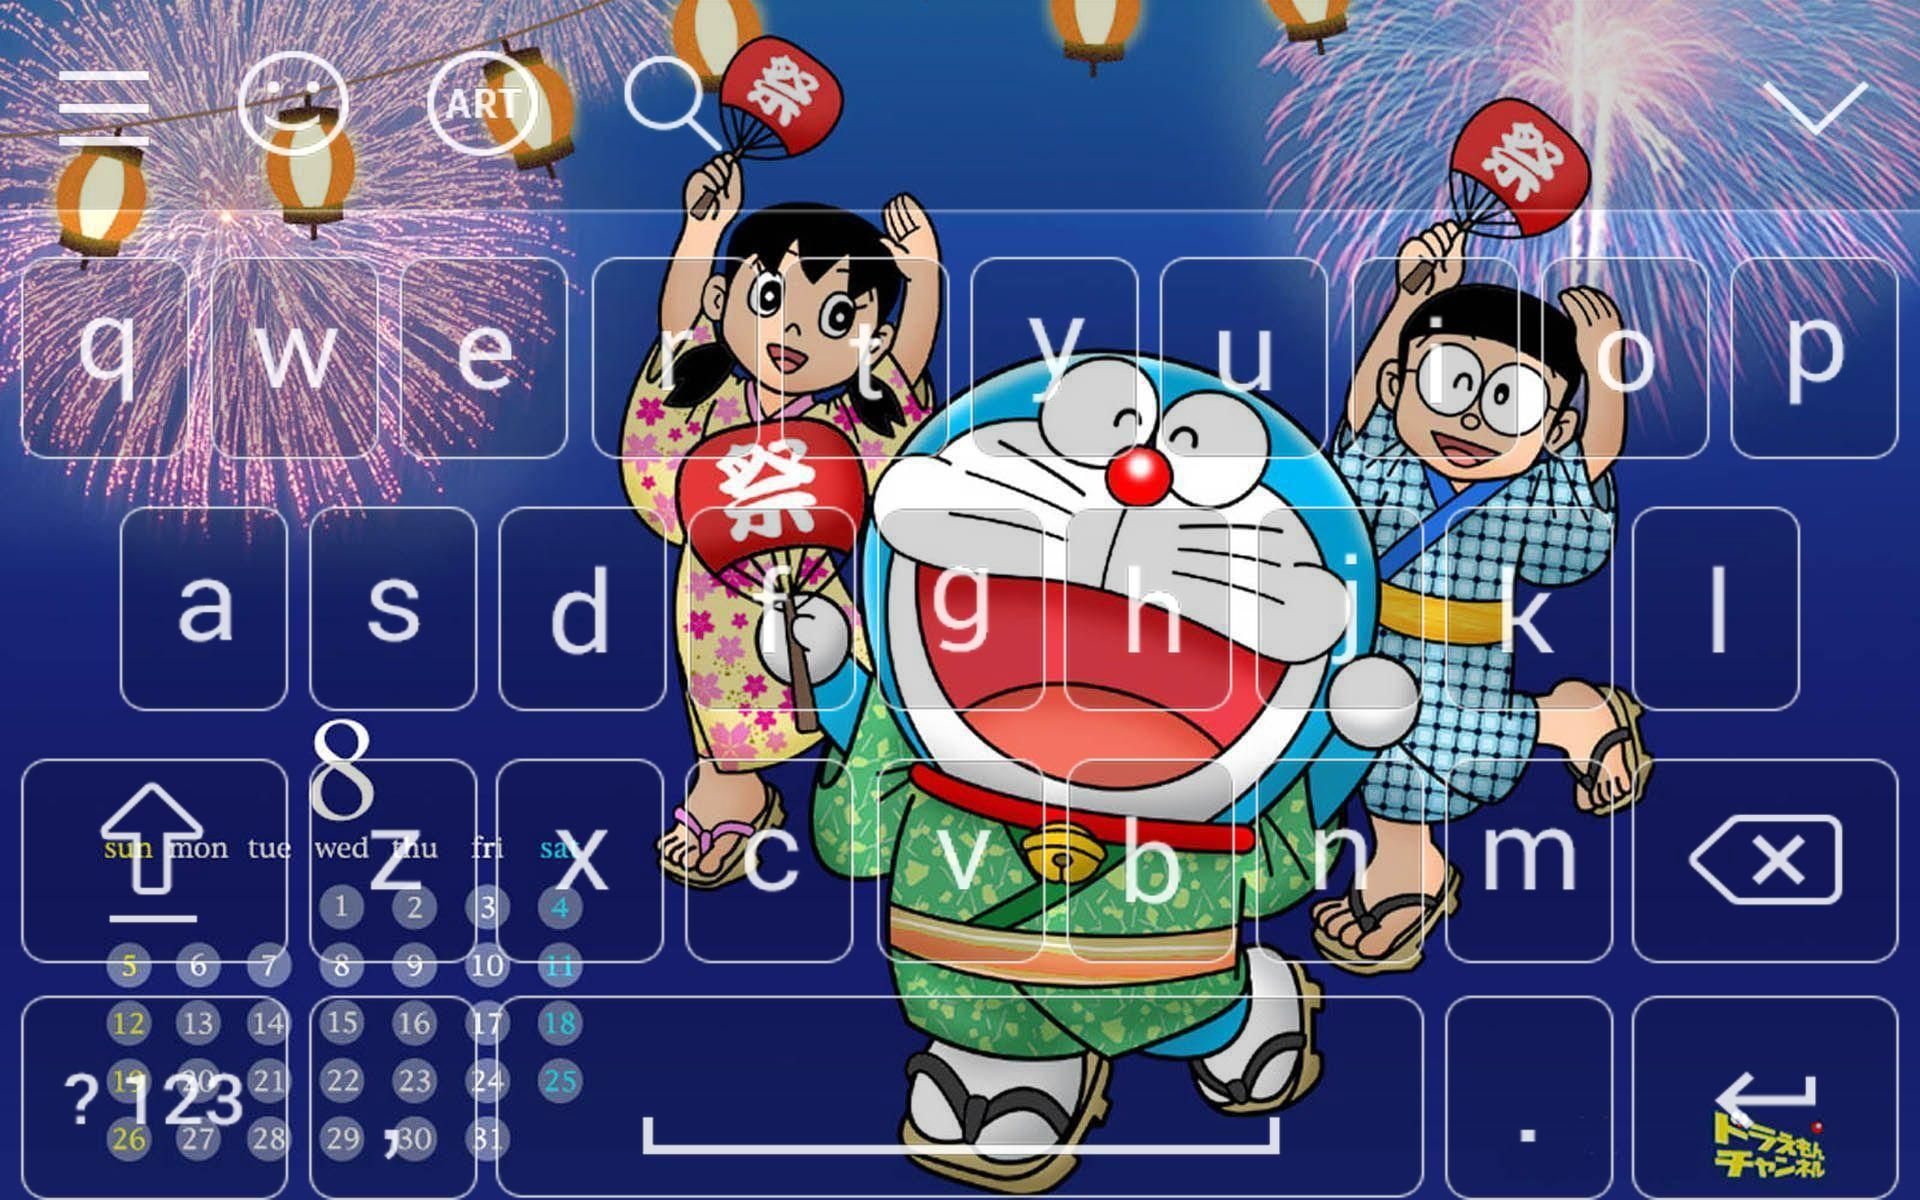 Aplikasi Wallpaper Doraemon Bergerak New Keyboard For Doraemon 2018 For Android Apk Download Wallpaper Doraemon Berger In 2020 Doraemon Hd Anime Wallpapers Wallpaper